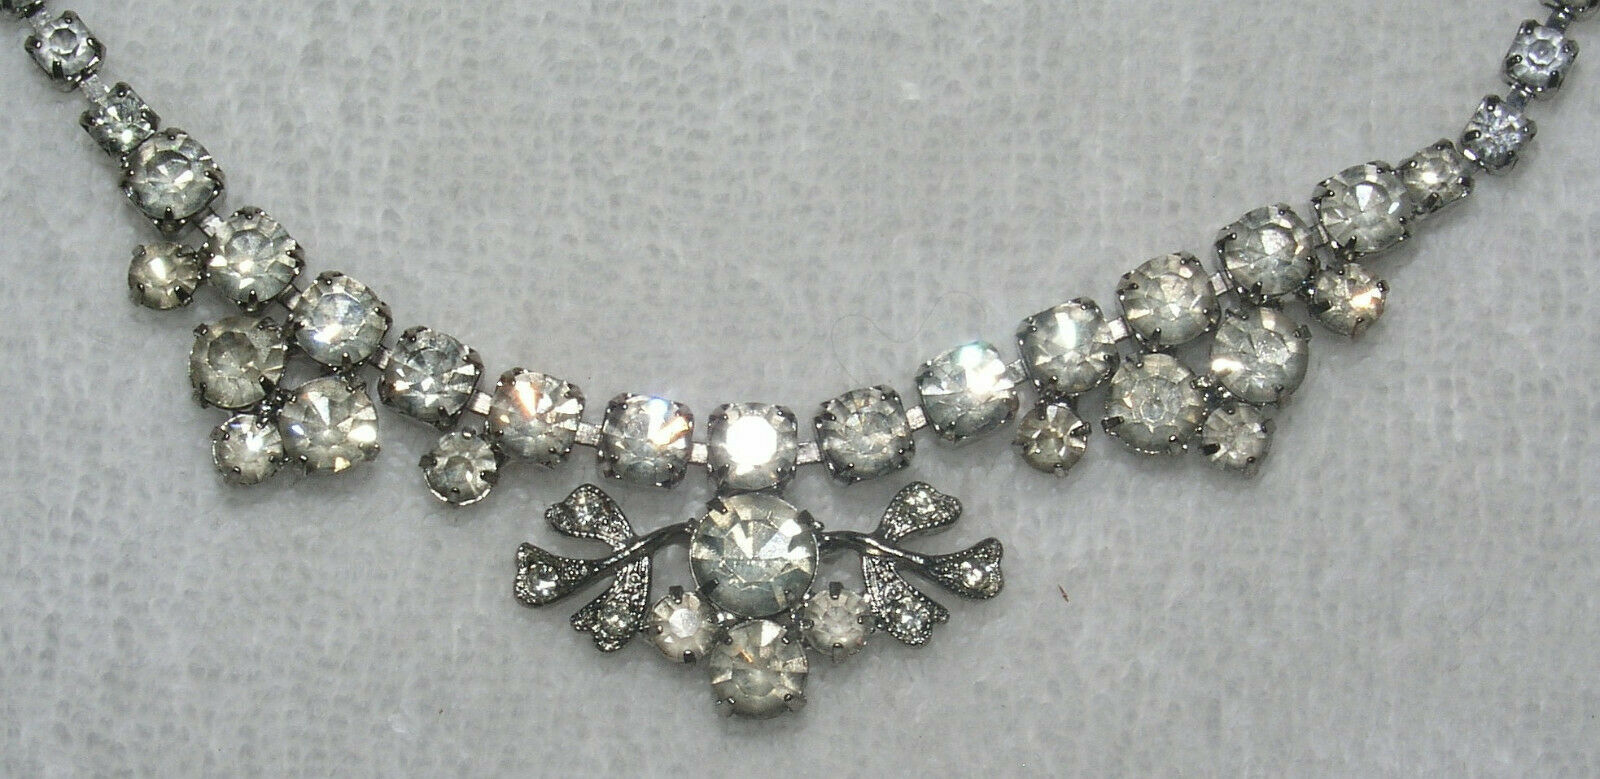 Rhinestone Necklace Choker Weiss 14 Inch Silver Tone Floral Wedding Prom Jewelry